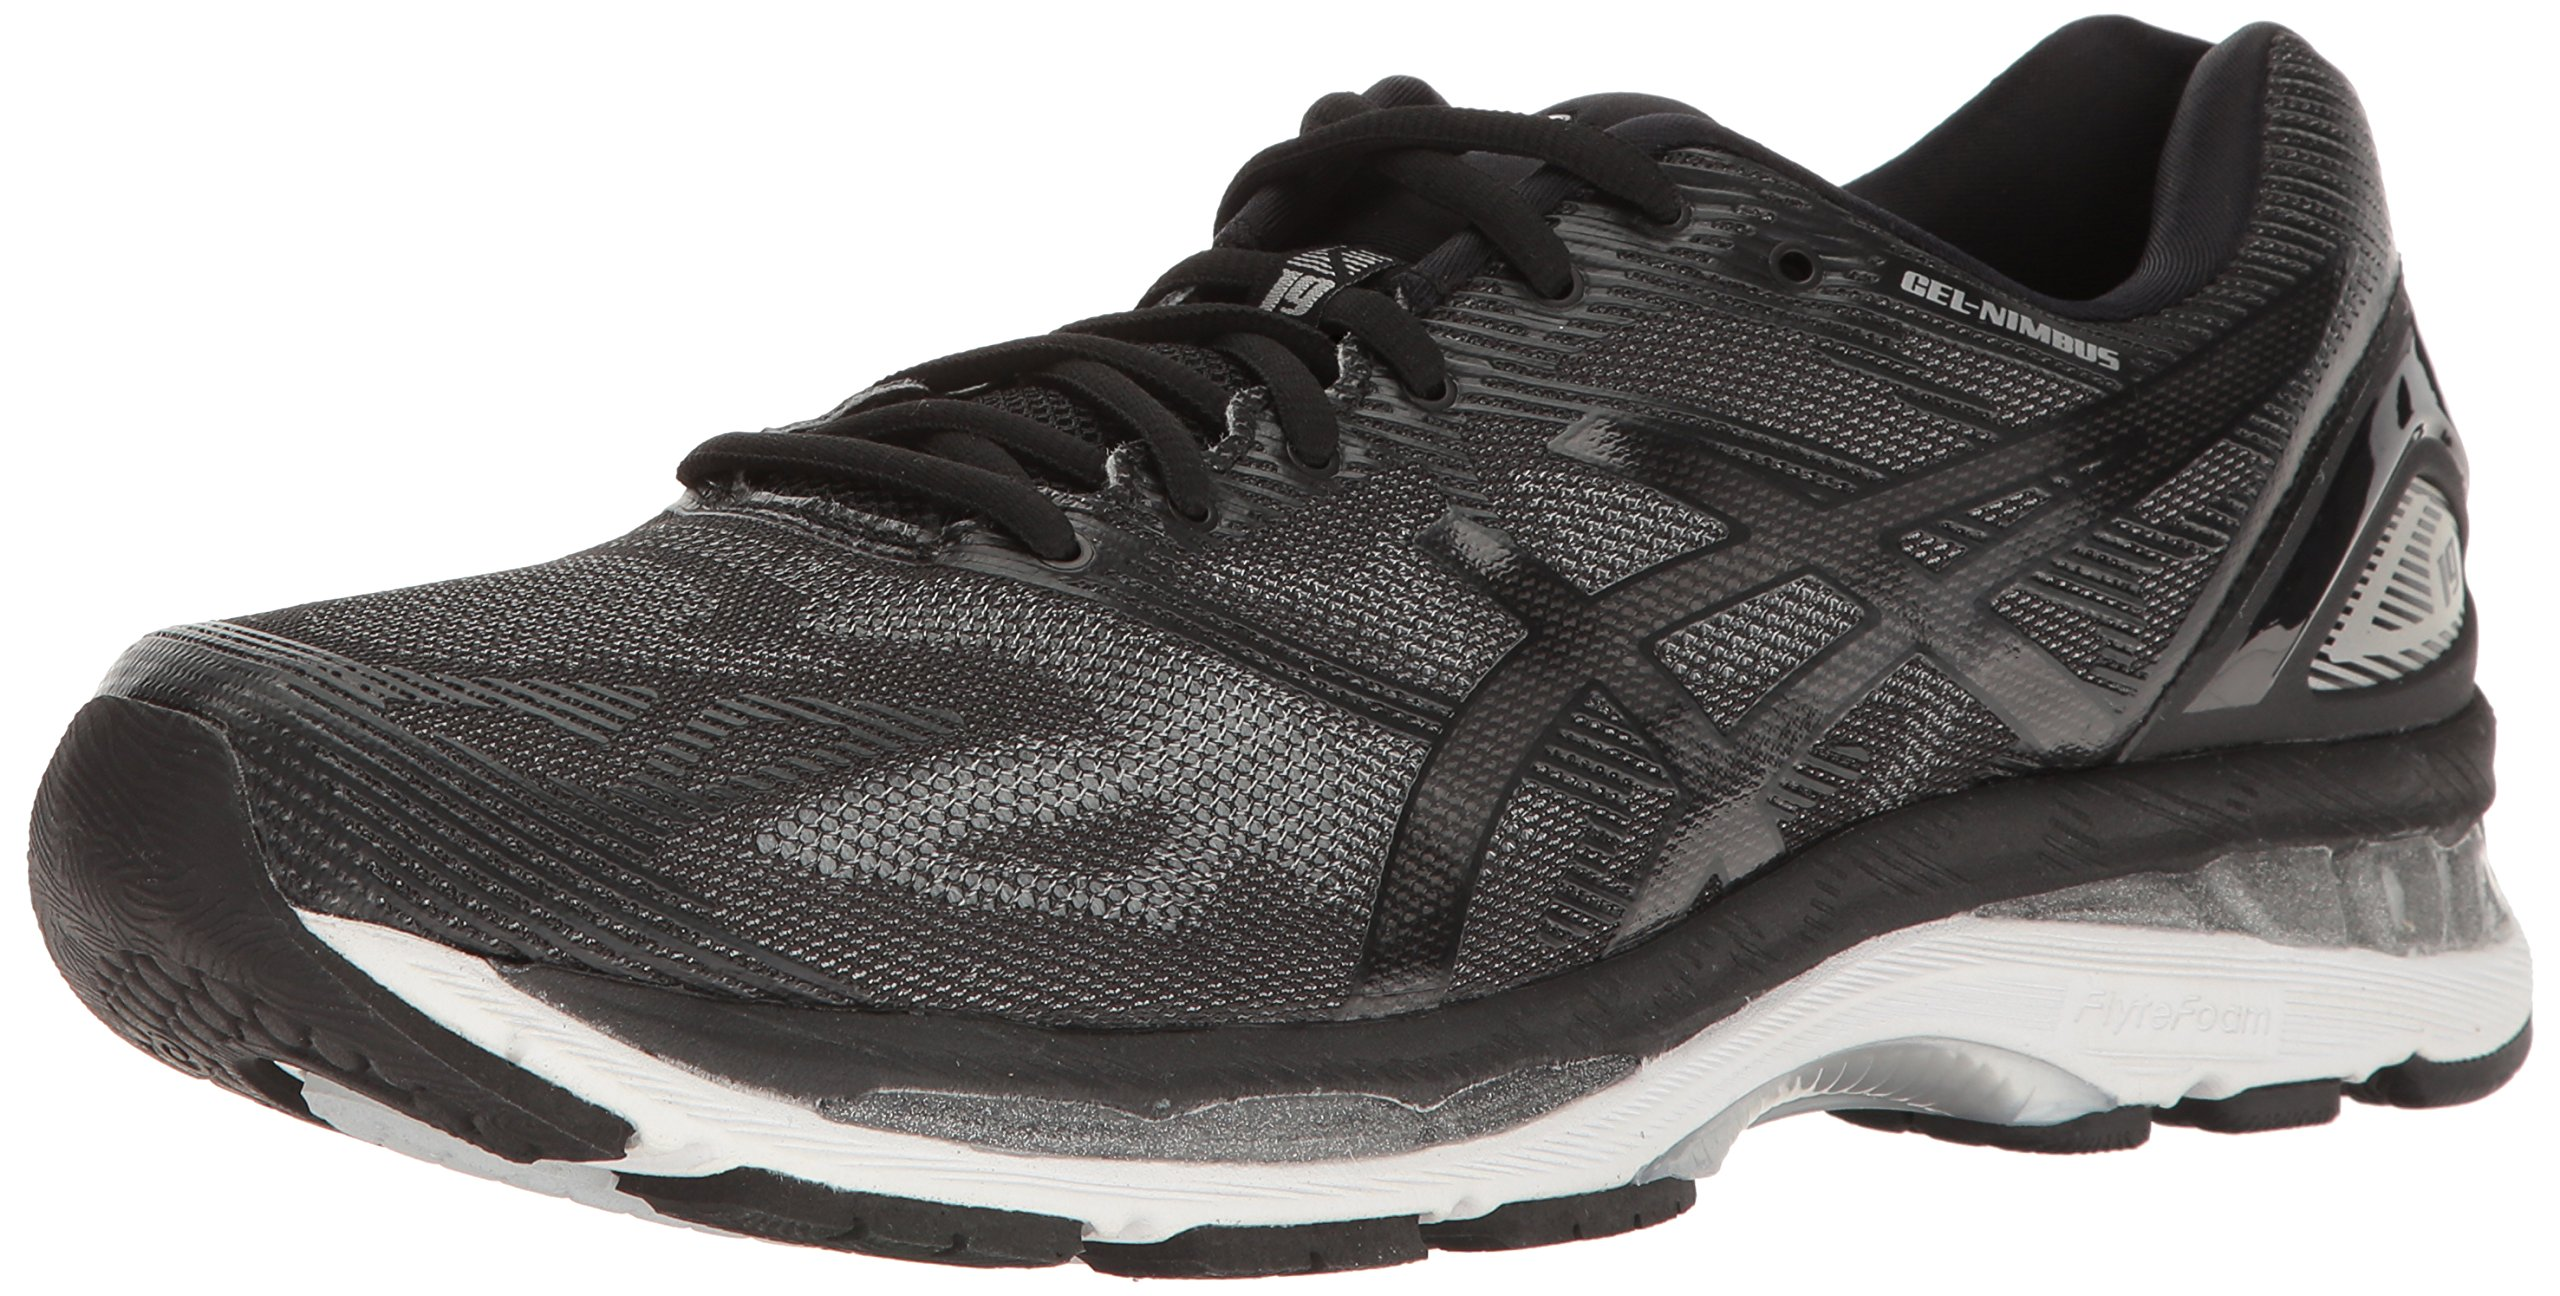 ASICS Men's Gel-Nimbus 19 Running Shoe, Black/Onyx/Silver, 10.5 M US